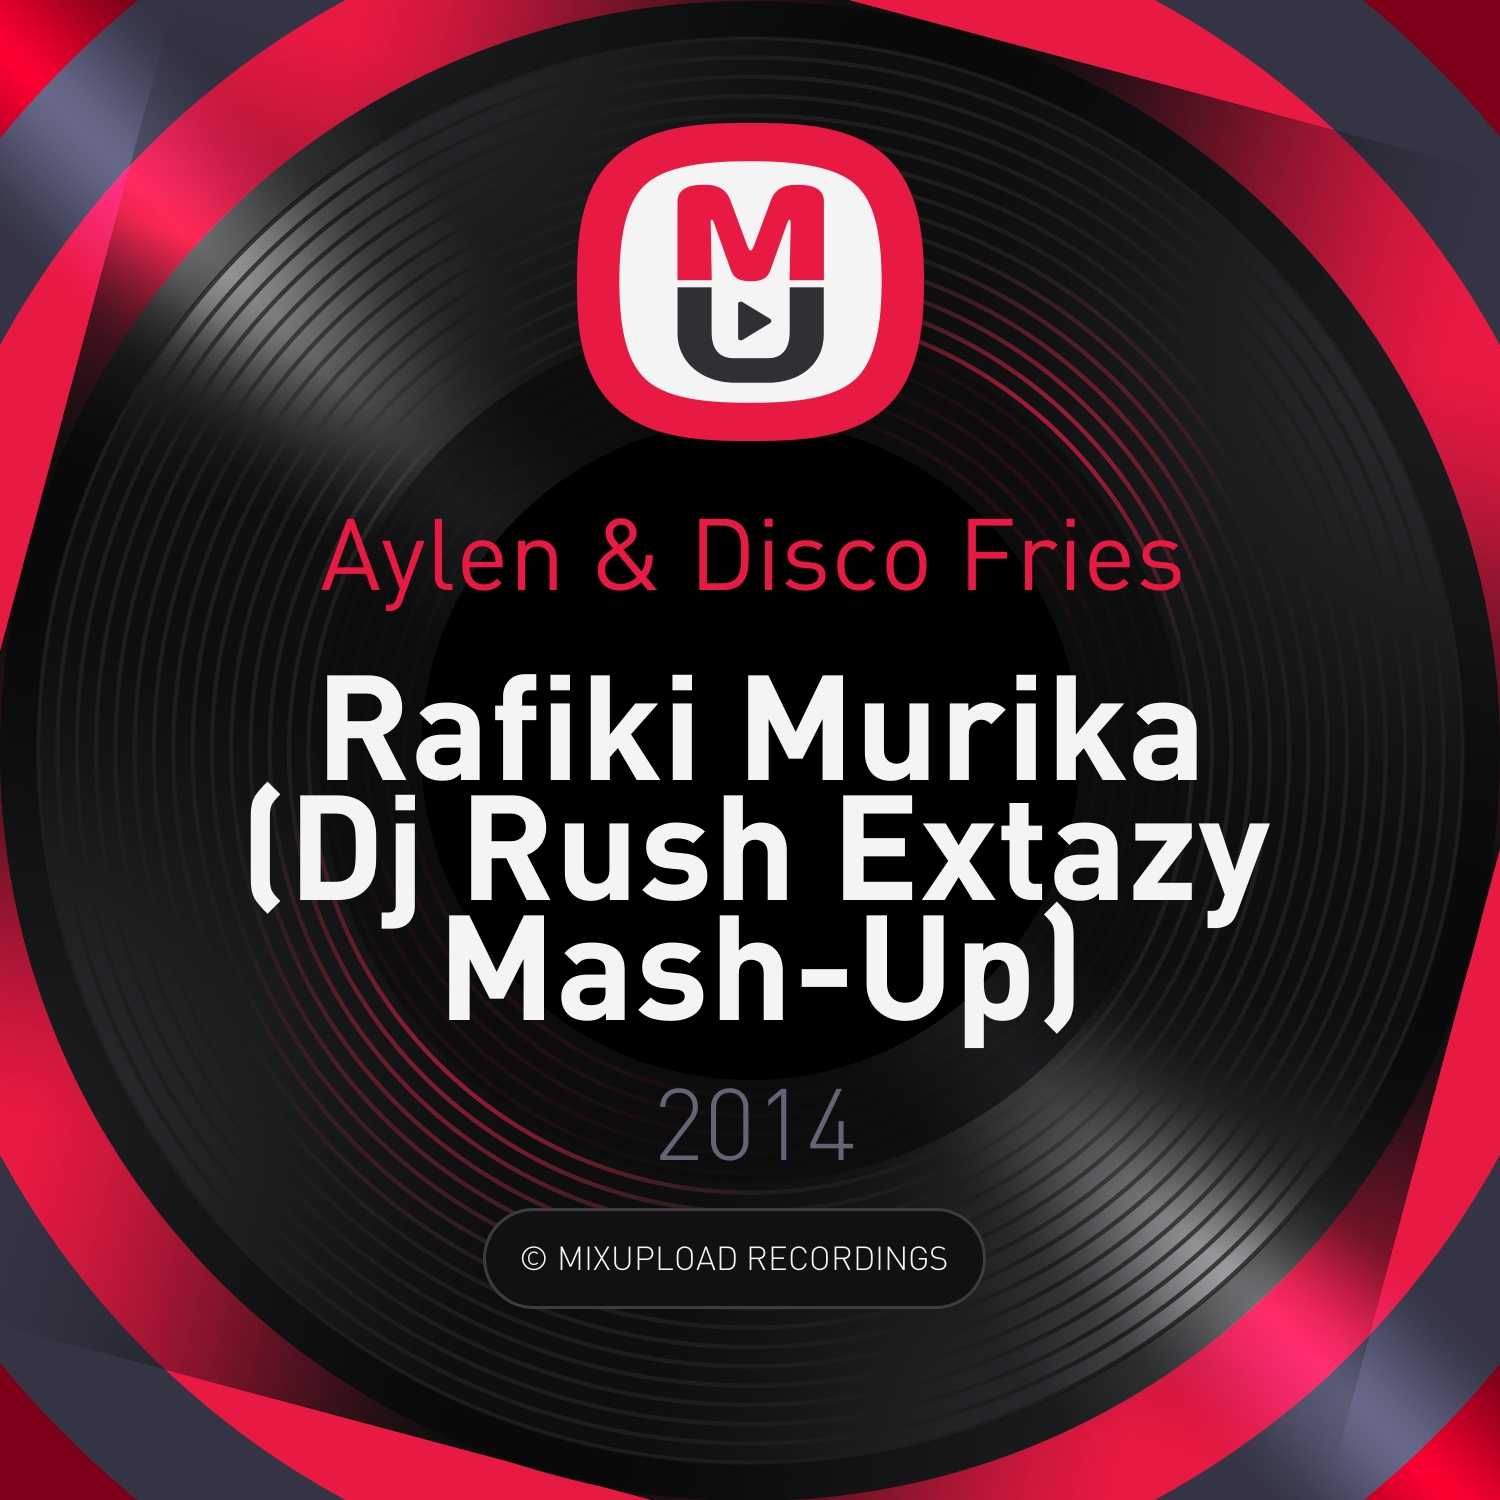 Aylen & Disco Fries - Rafiki Murika (Dj Rush Extazy Mash-Up)